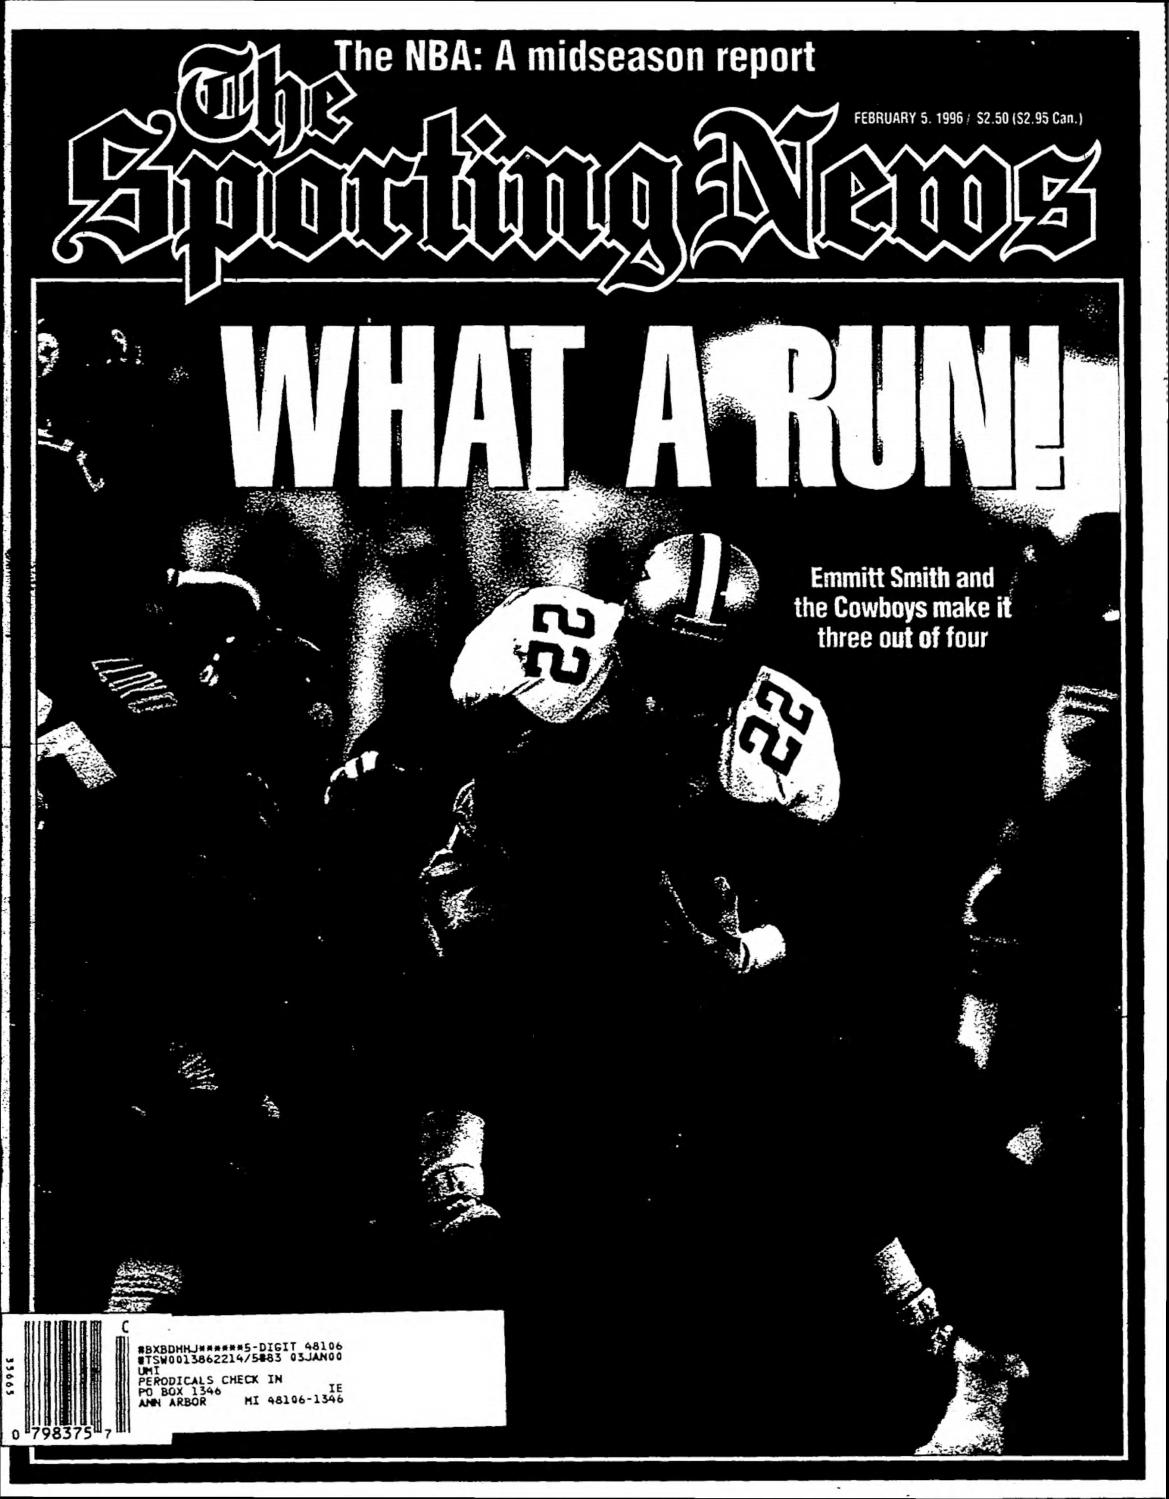 The sporting news 02 05 1996 by Mexico Sports Collectibles